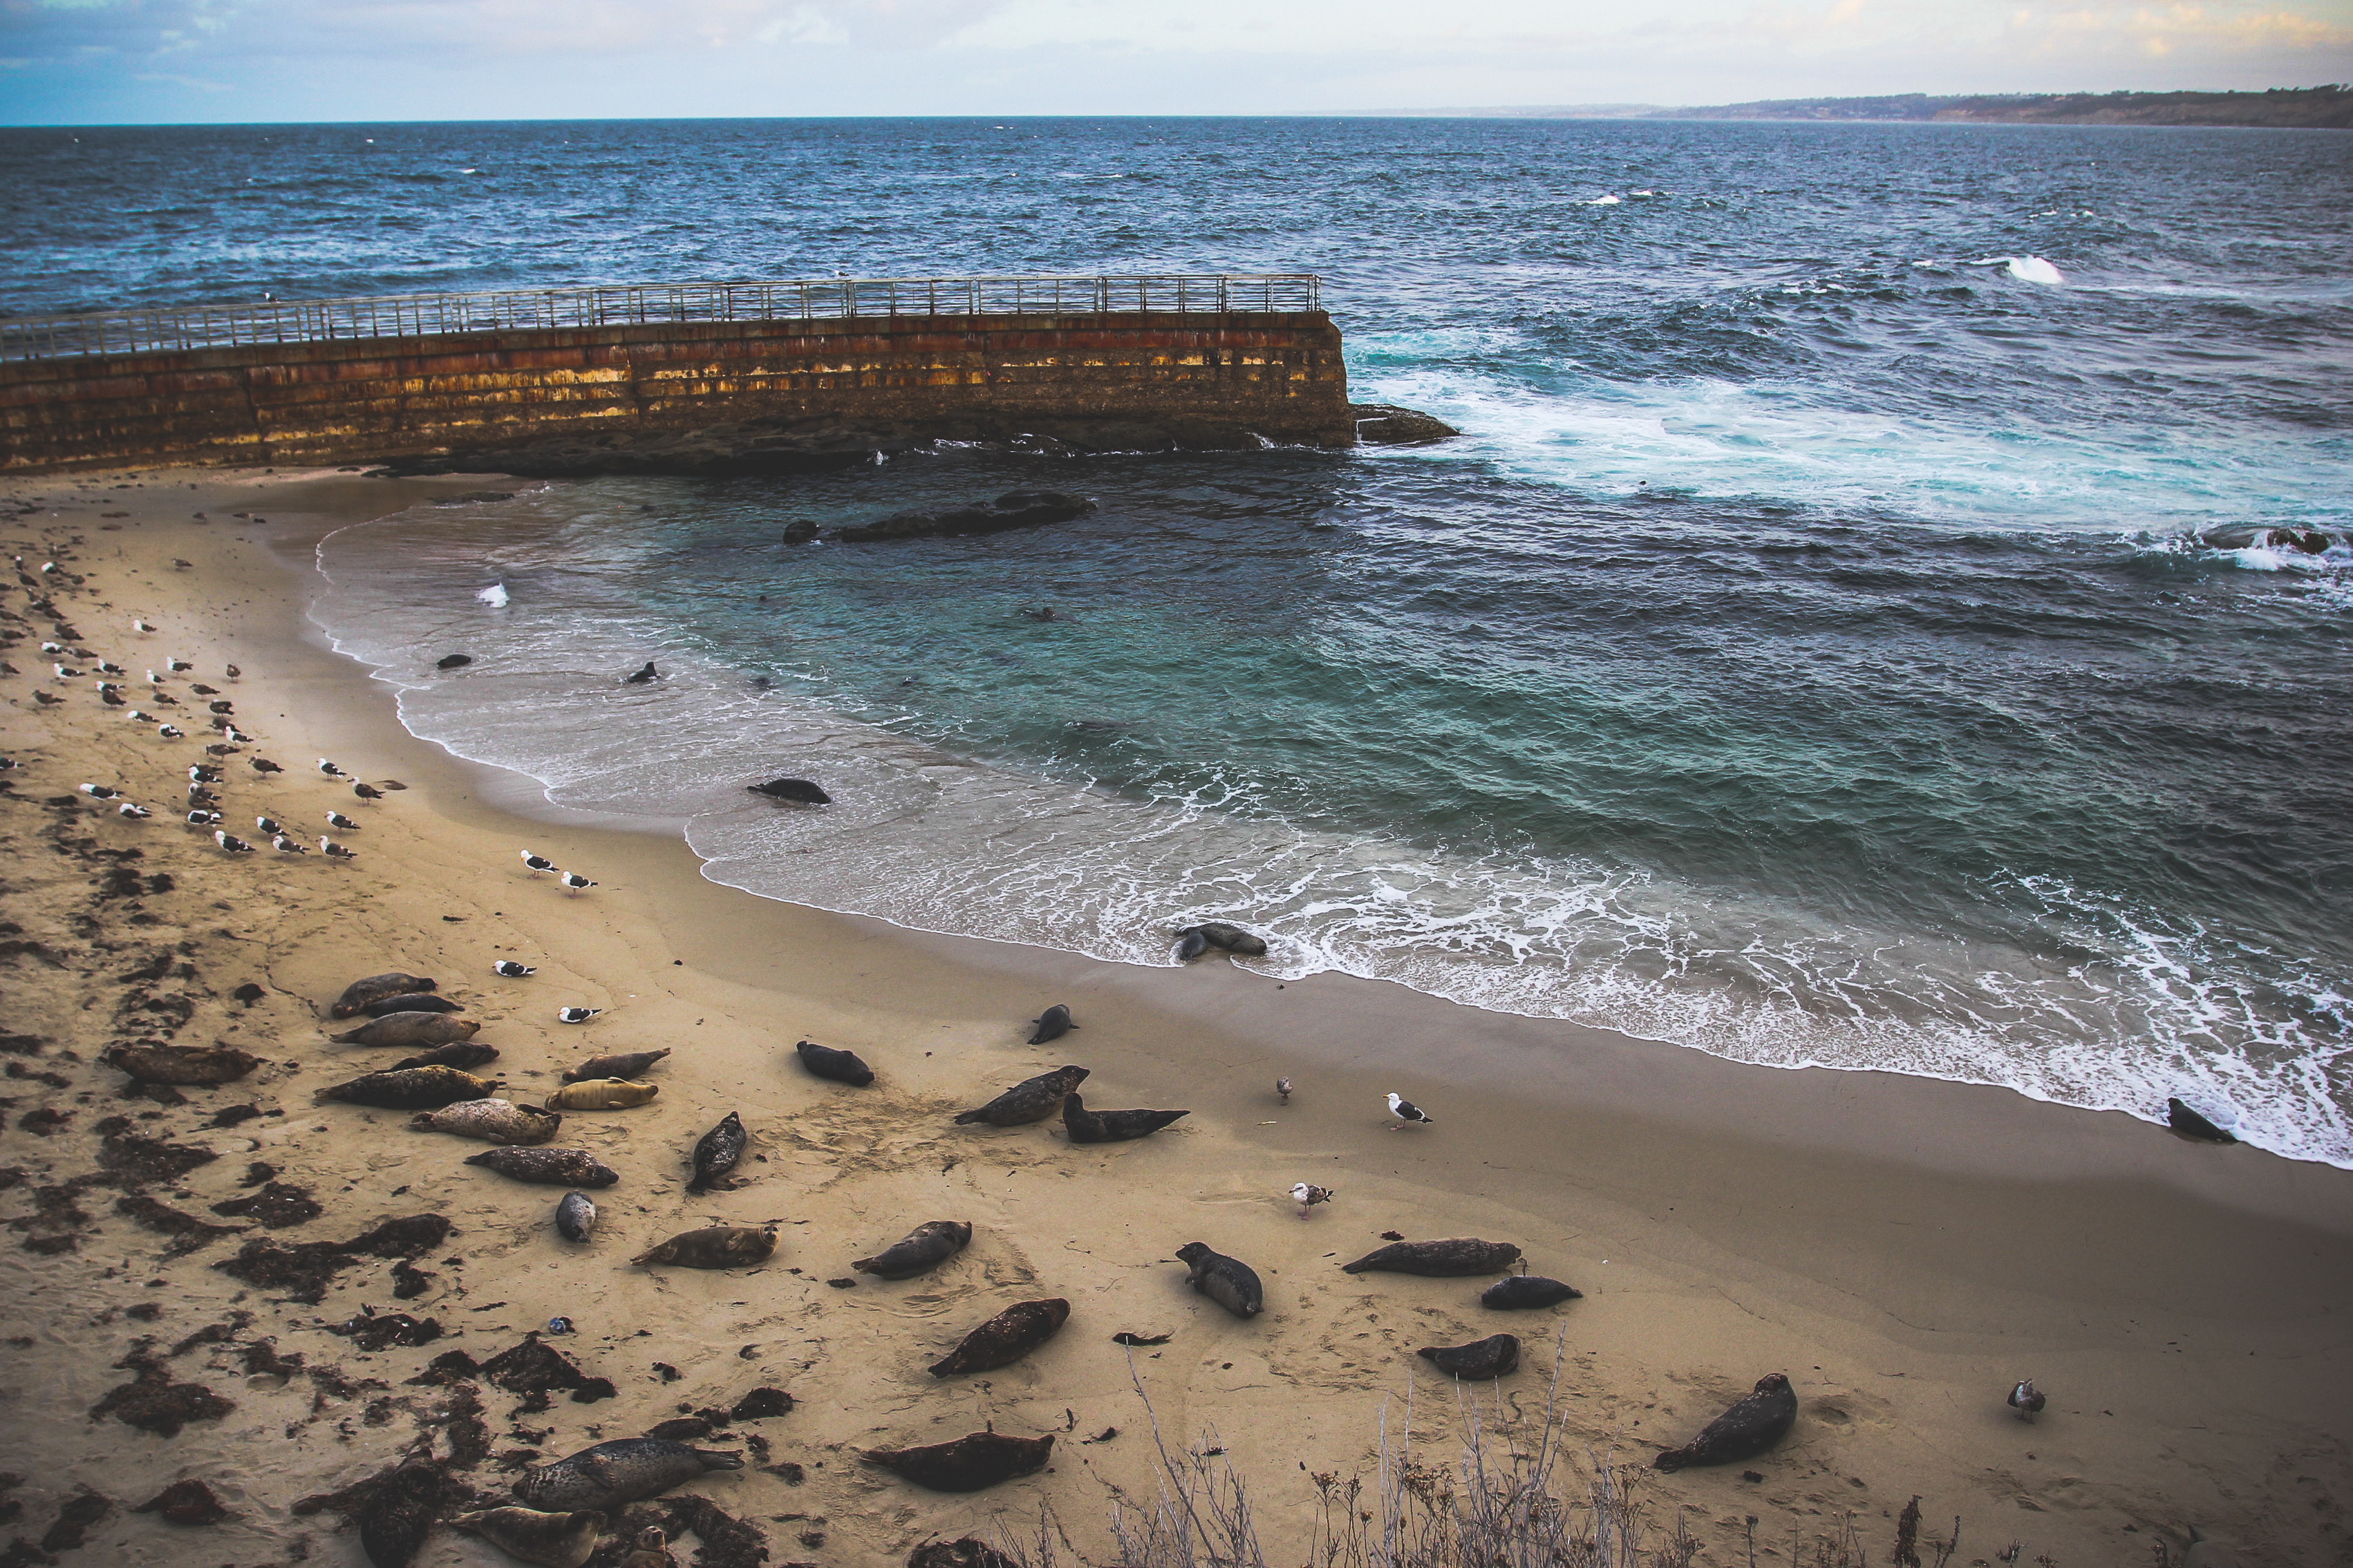 Harbor Seals Lounging at La Jolla Childrens Pool in San Diego